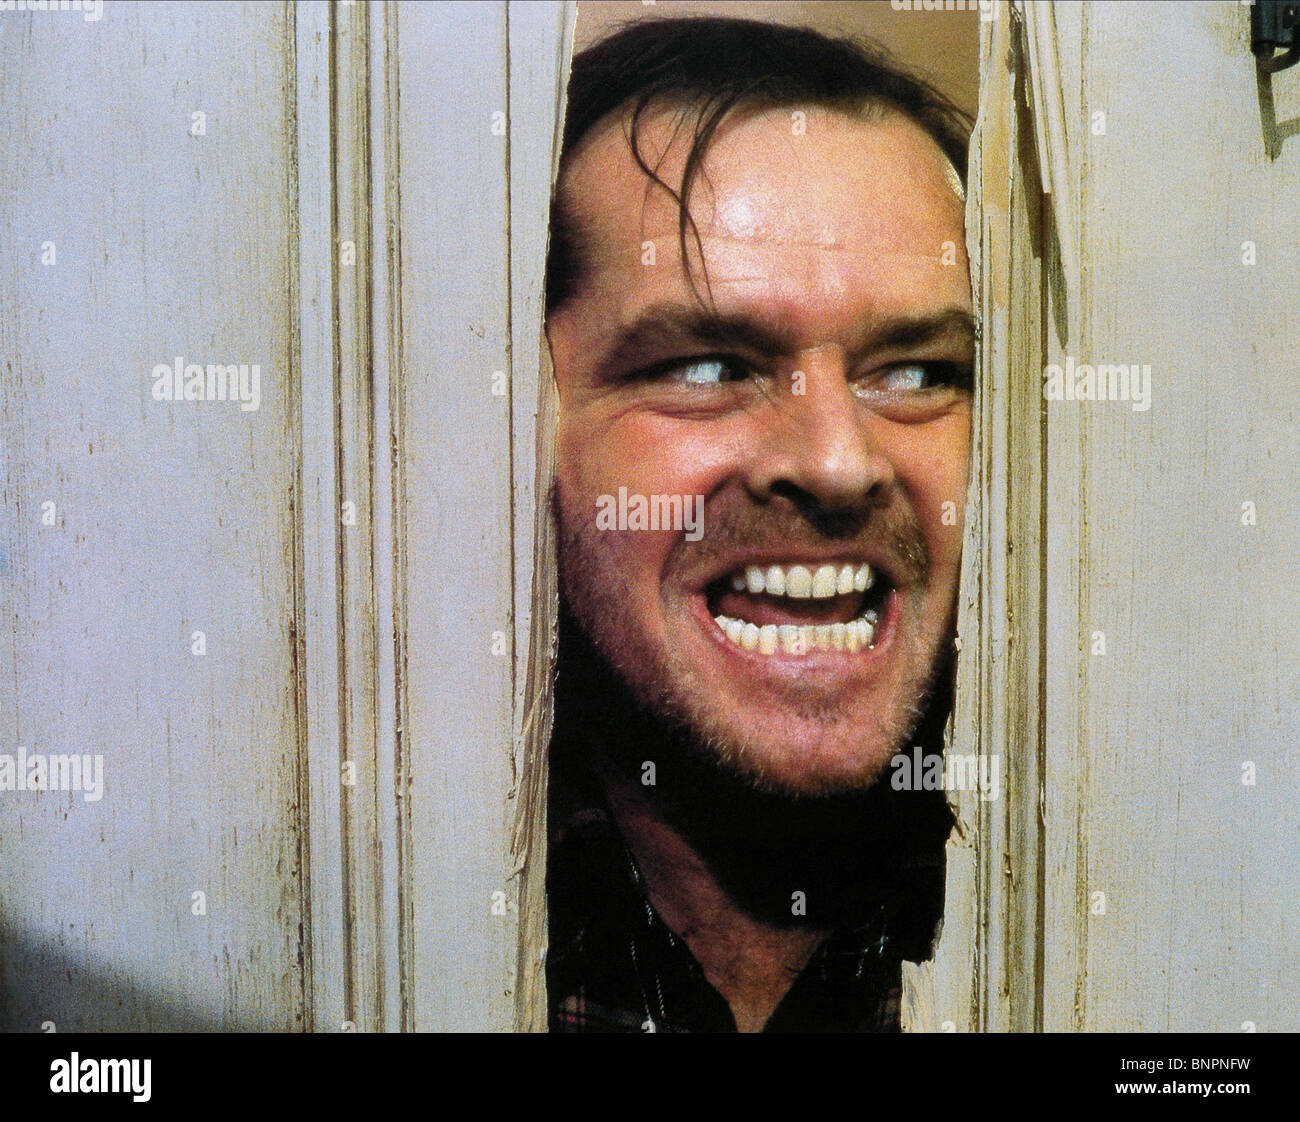 JACK NICHOLSON THE SHINING (1980) - Stock Image